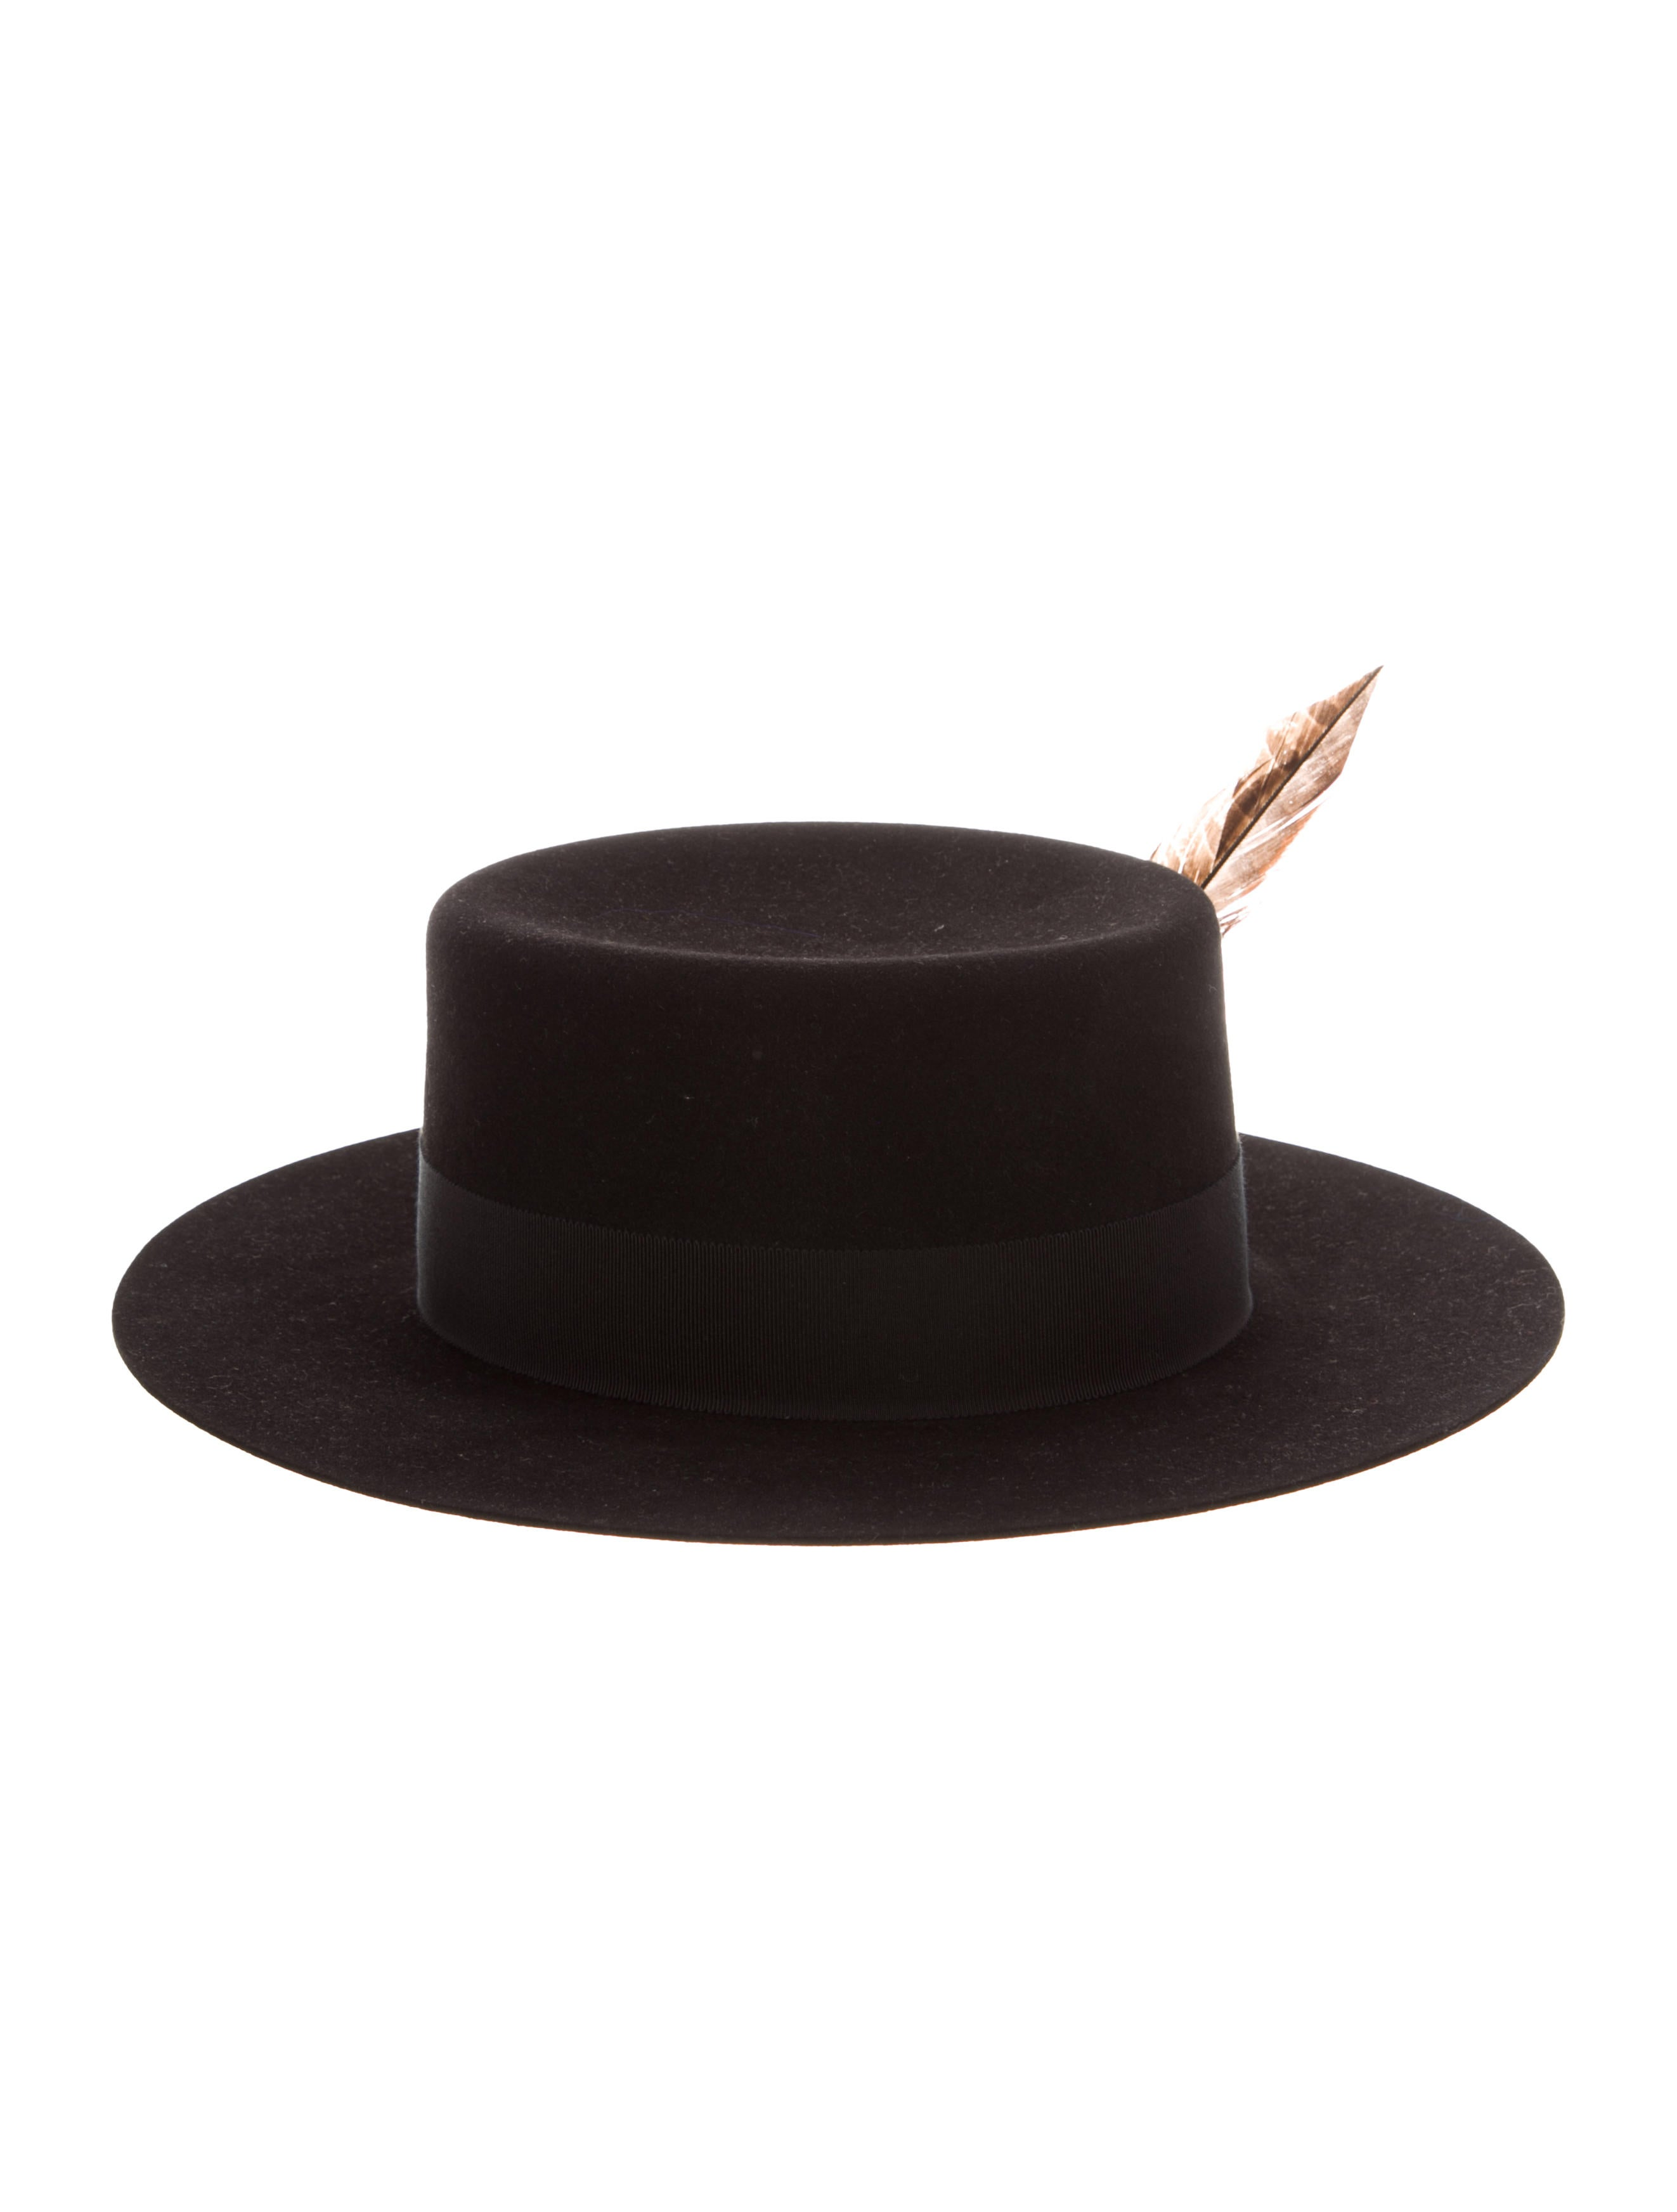 Saint Laurent Felted Suede-Trimmed Fedora w  Tags - Accessories ... 14058091b64